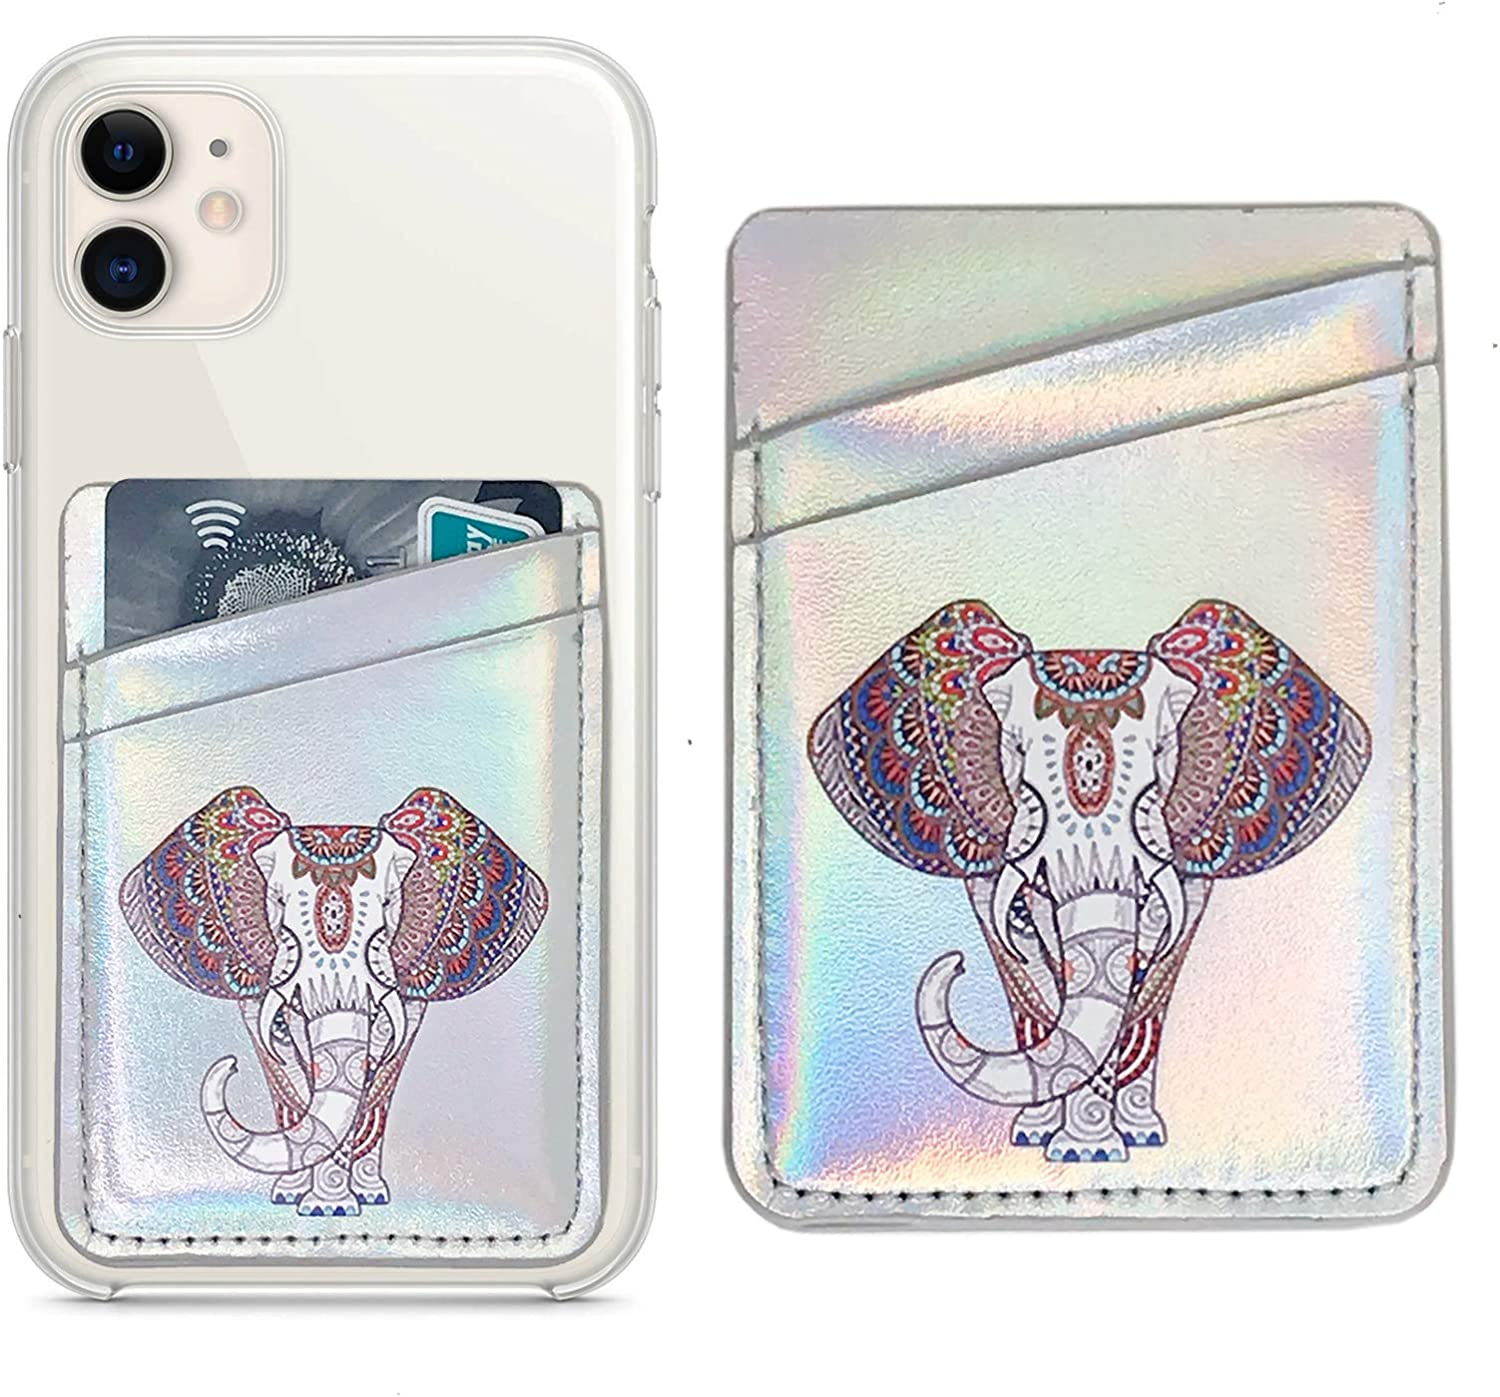 Oddss Cell Phone Card Hoder Sleeves RFID Blocking PU Leather Pocket Wallet Stick on Cell Phone Credit for Back of iPhone,Android Smartphones (Elephant)